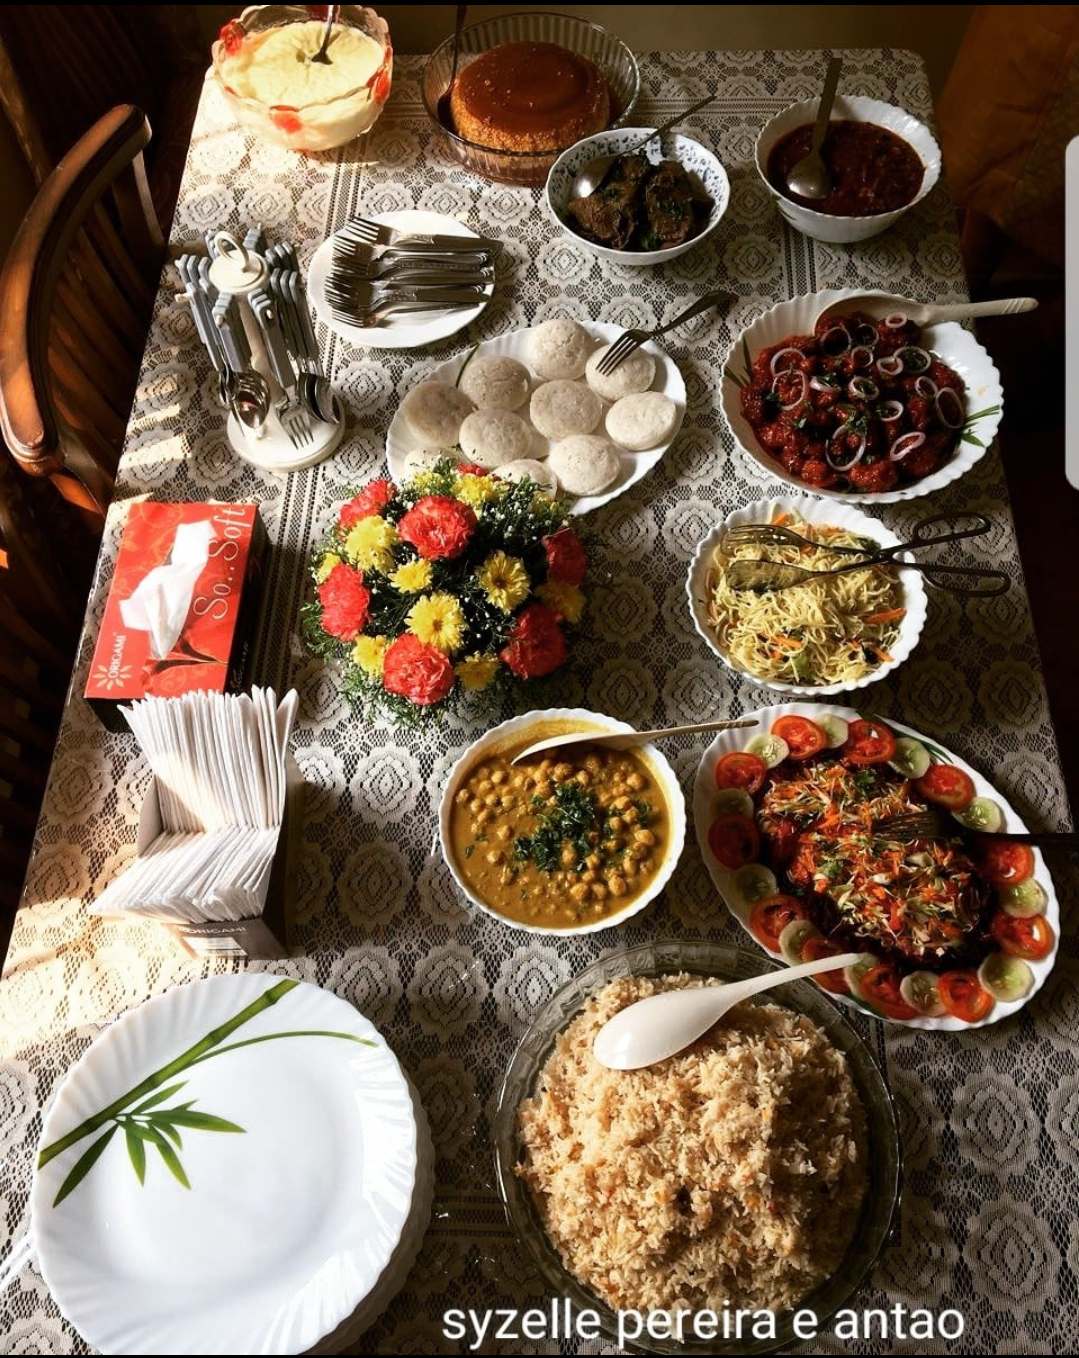 A beautifully laid out Goan dinner table typical of Christmas Day. Photo courtesy Syzelle Pereira e Antao. Do not reproduce without permission.